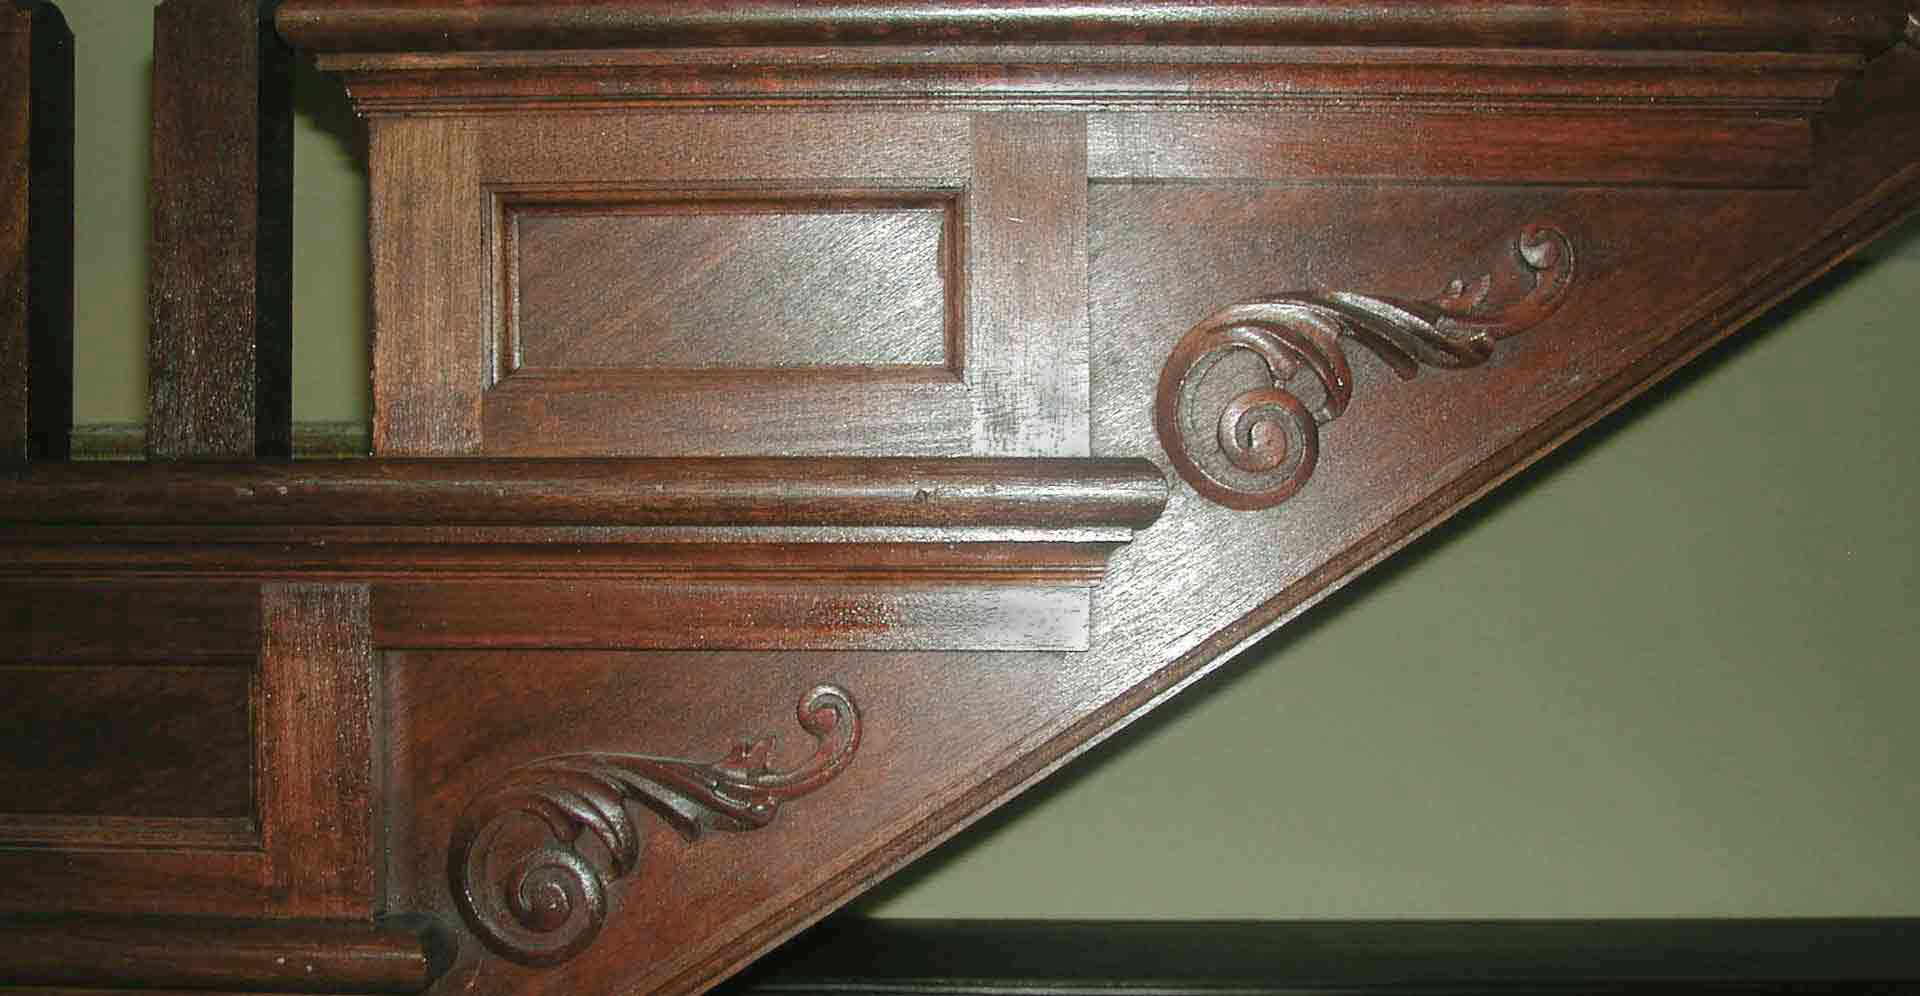 UNION LEAGUE CAFE - STAIR DETAIL